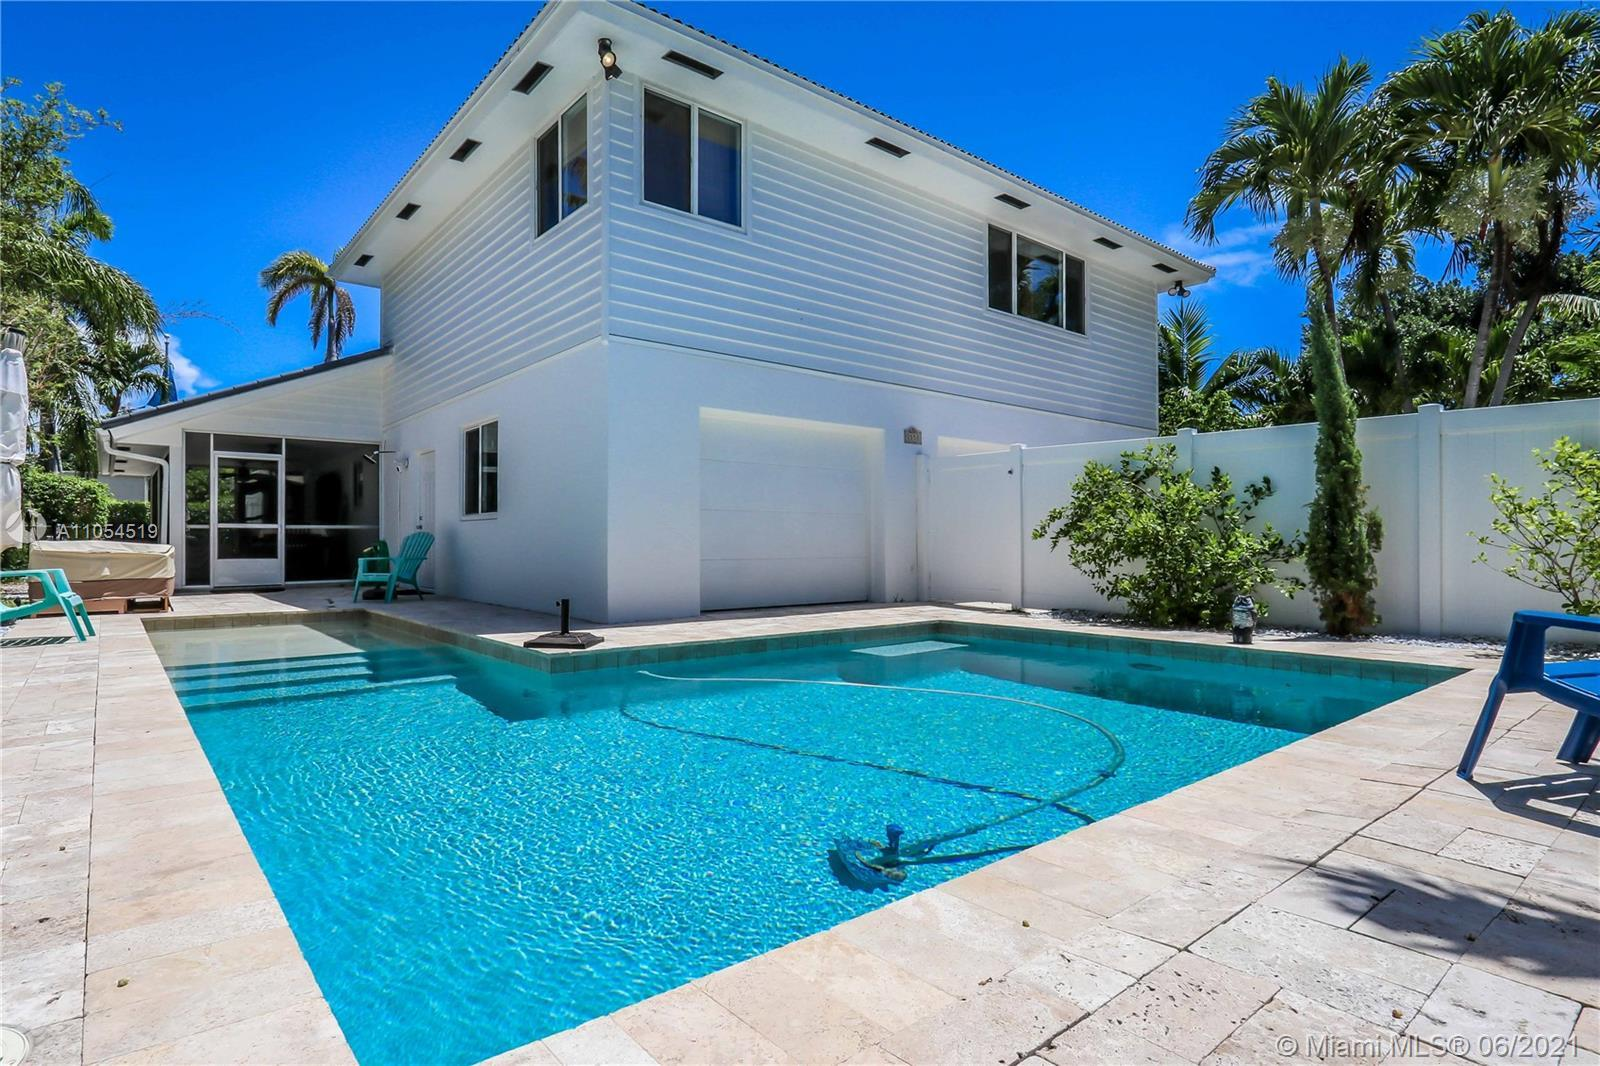 Unique 3bd / 2ba in the heart of Hollywood Lakes! Open floor plan with vaulted ceilings ~ This 2 flo